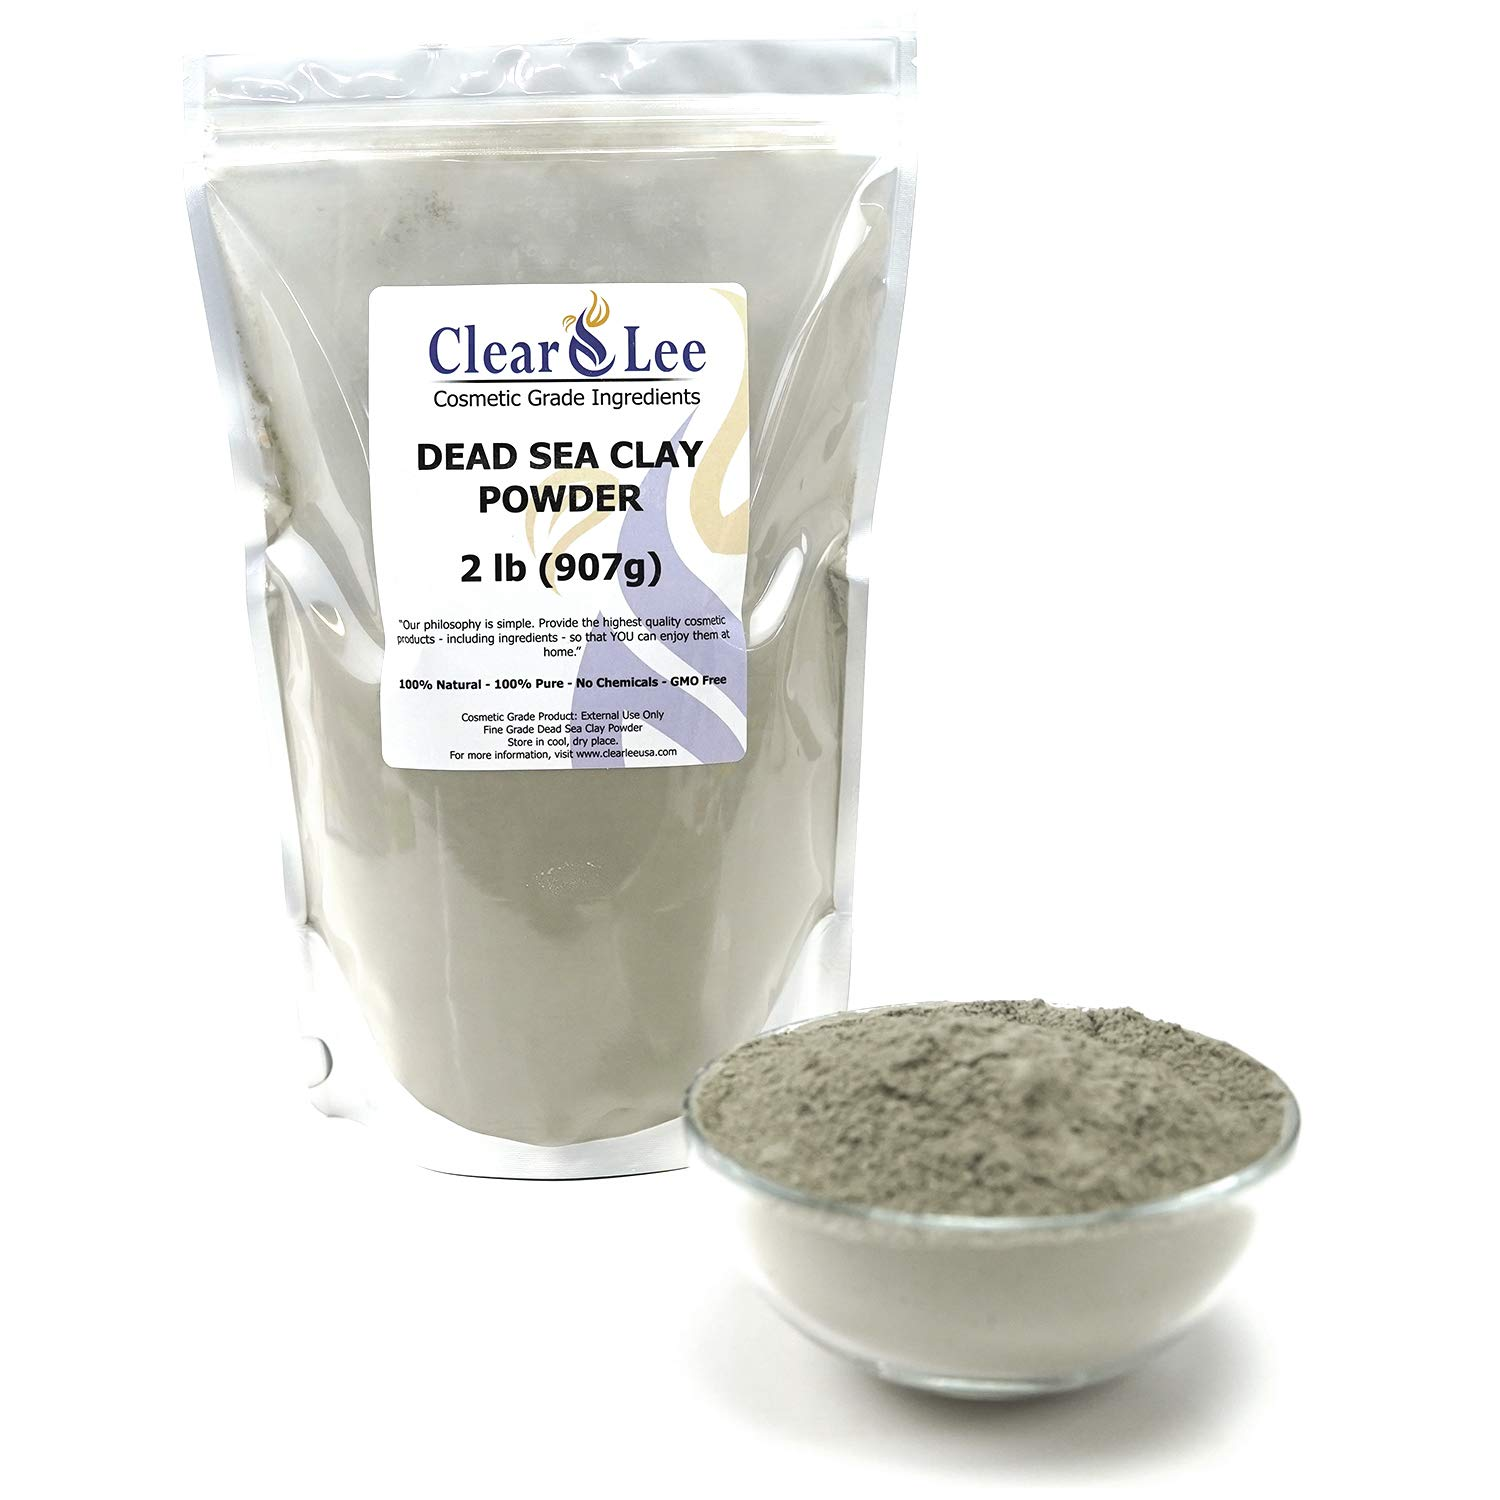 ClearLee Dead Sea Clay Cosmetic Grade Powder - 2 LB 100% Pure Natural Powder - Great For Skin Detox, Rejuvenation, and More - Heal Damaged Skin - DIY Clay Face Mask